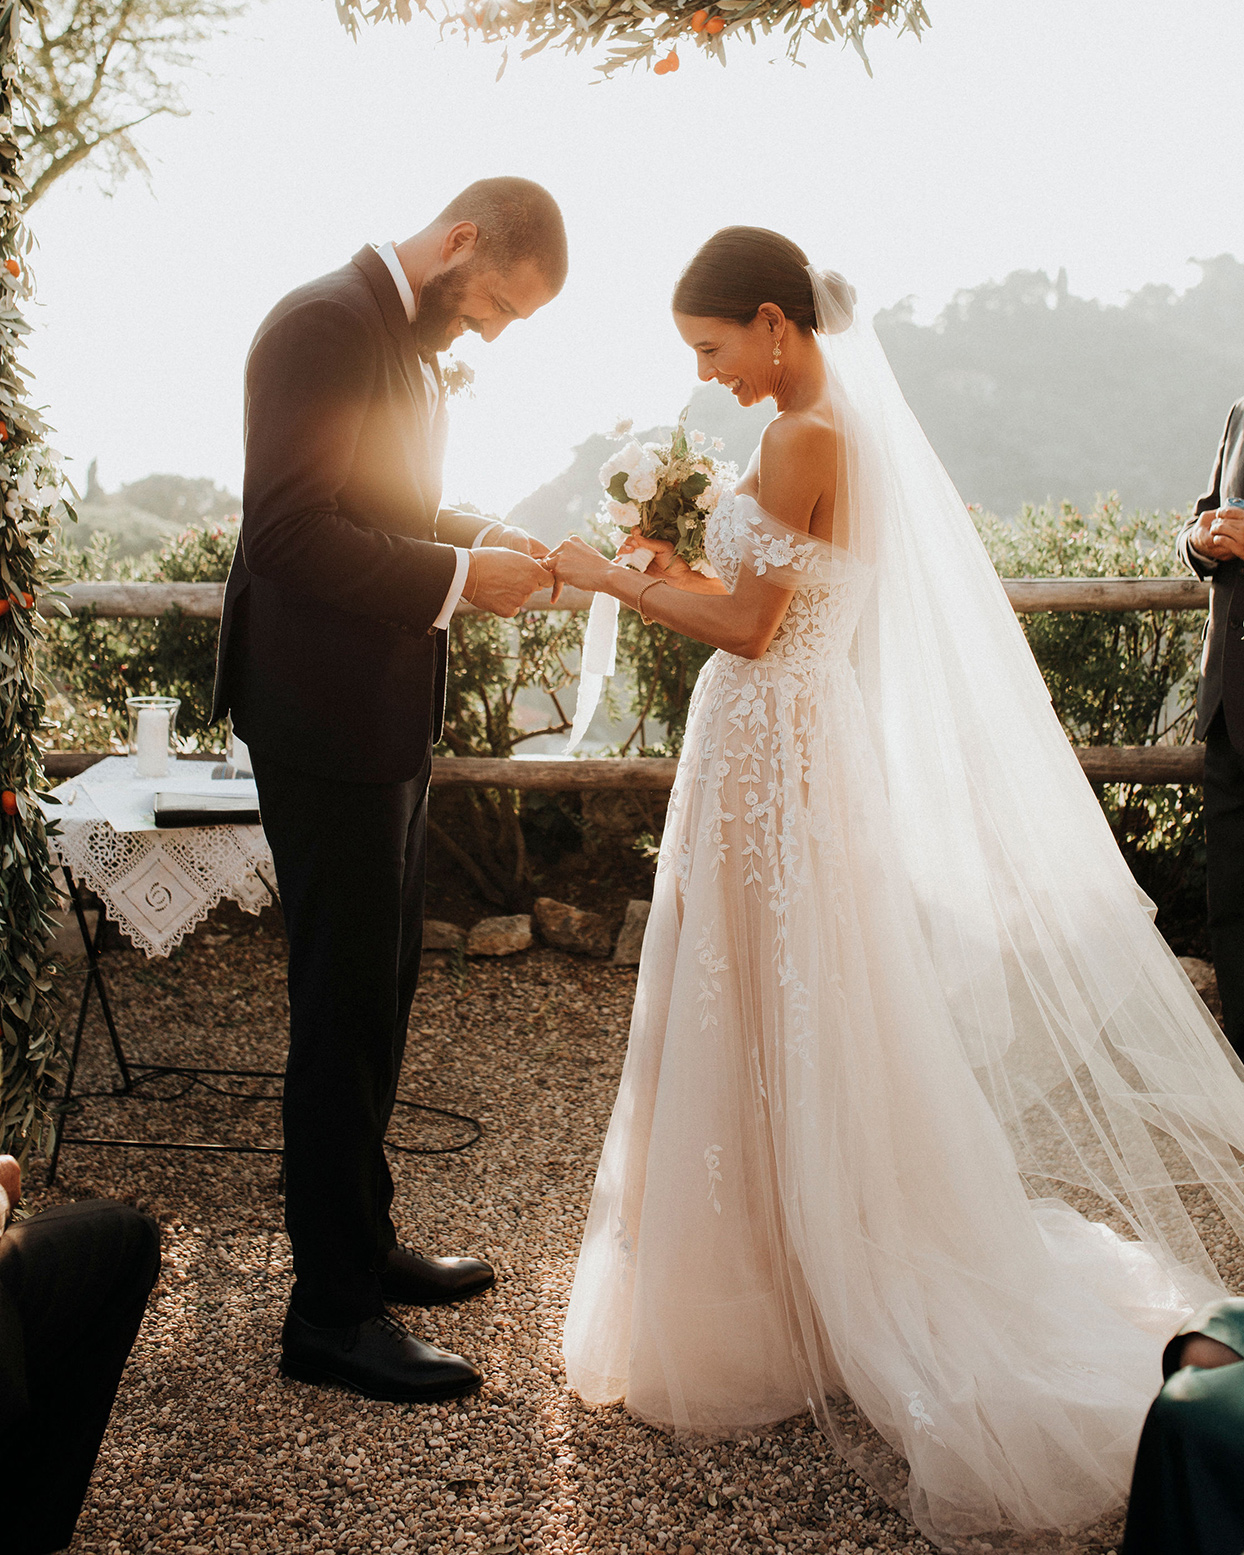 jaclyn antonio wedding ceremony ring exchange